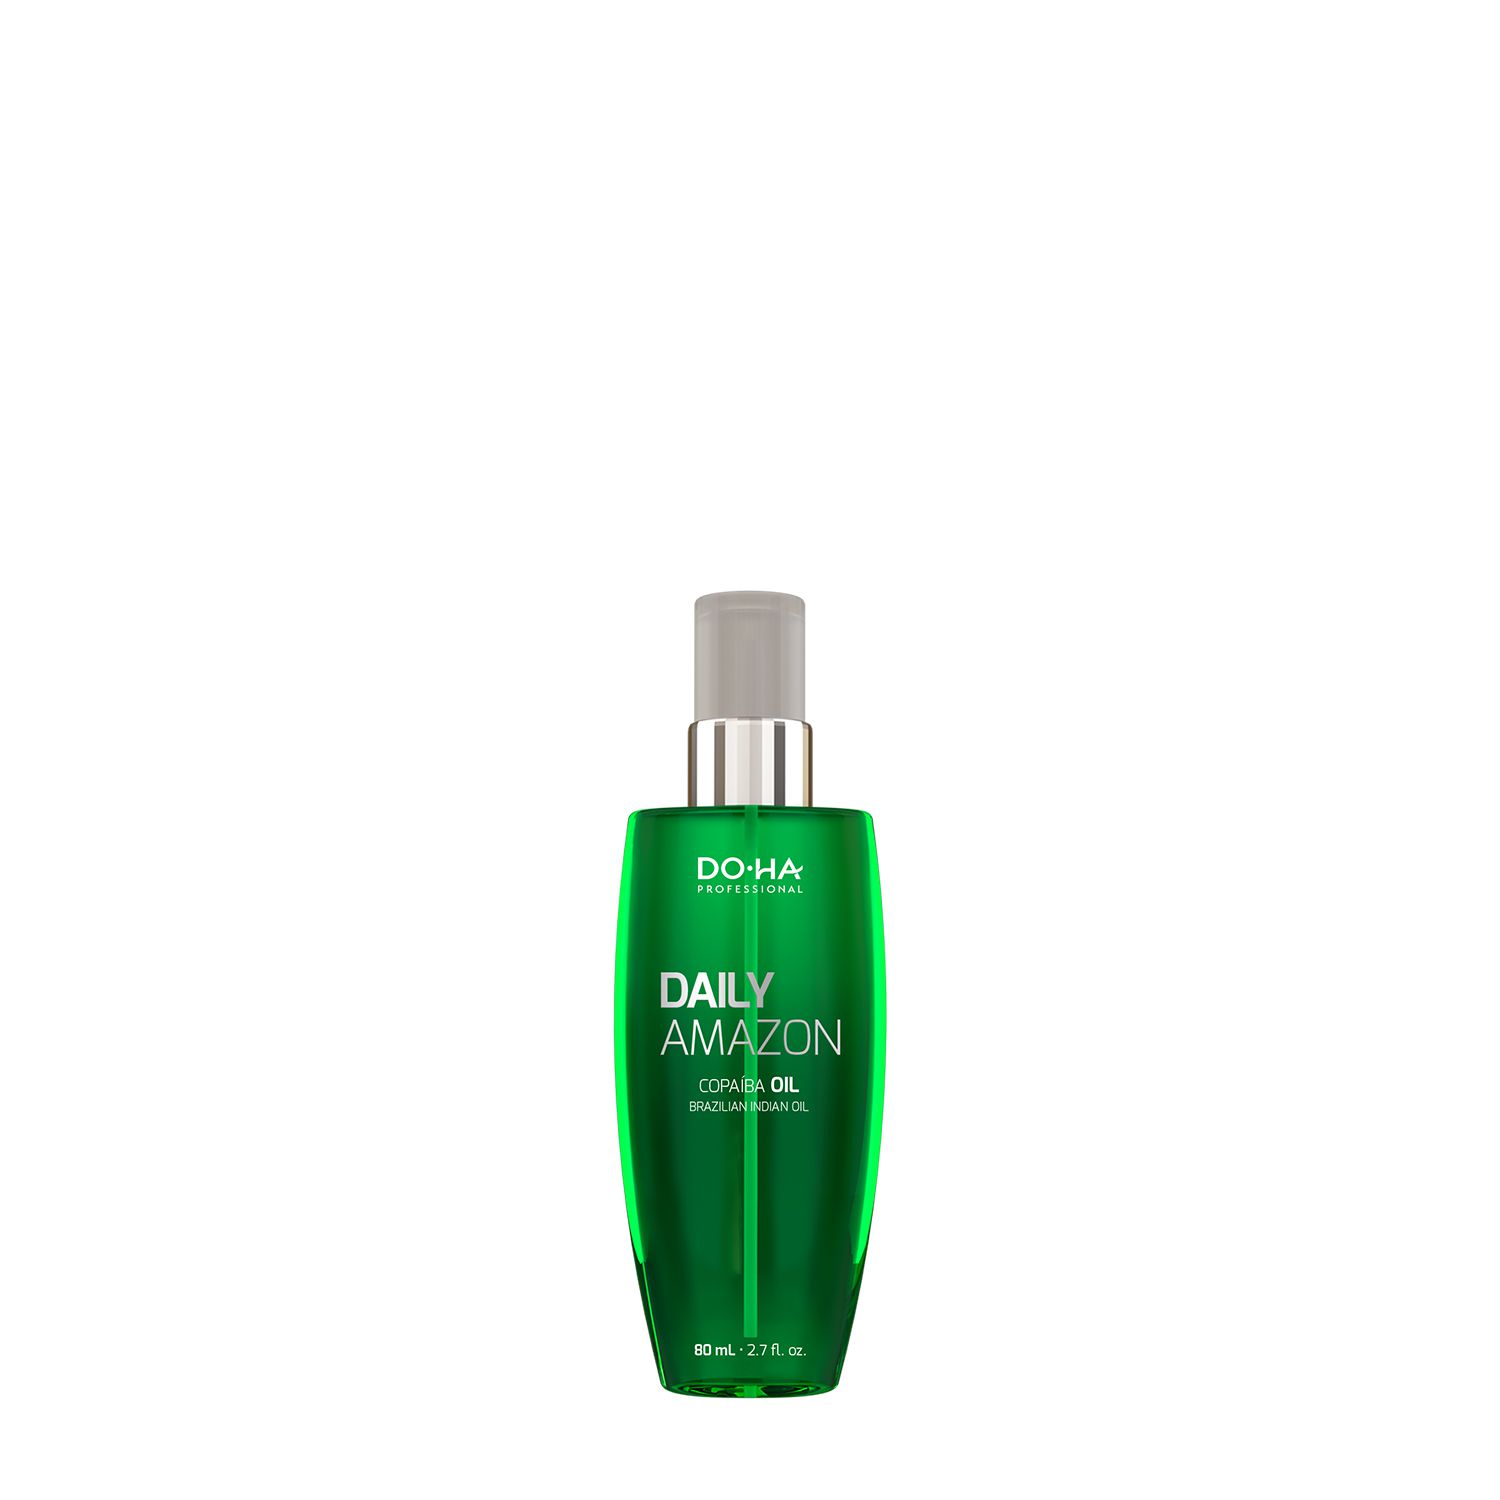 Daily Amazon - Oil - 70mL